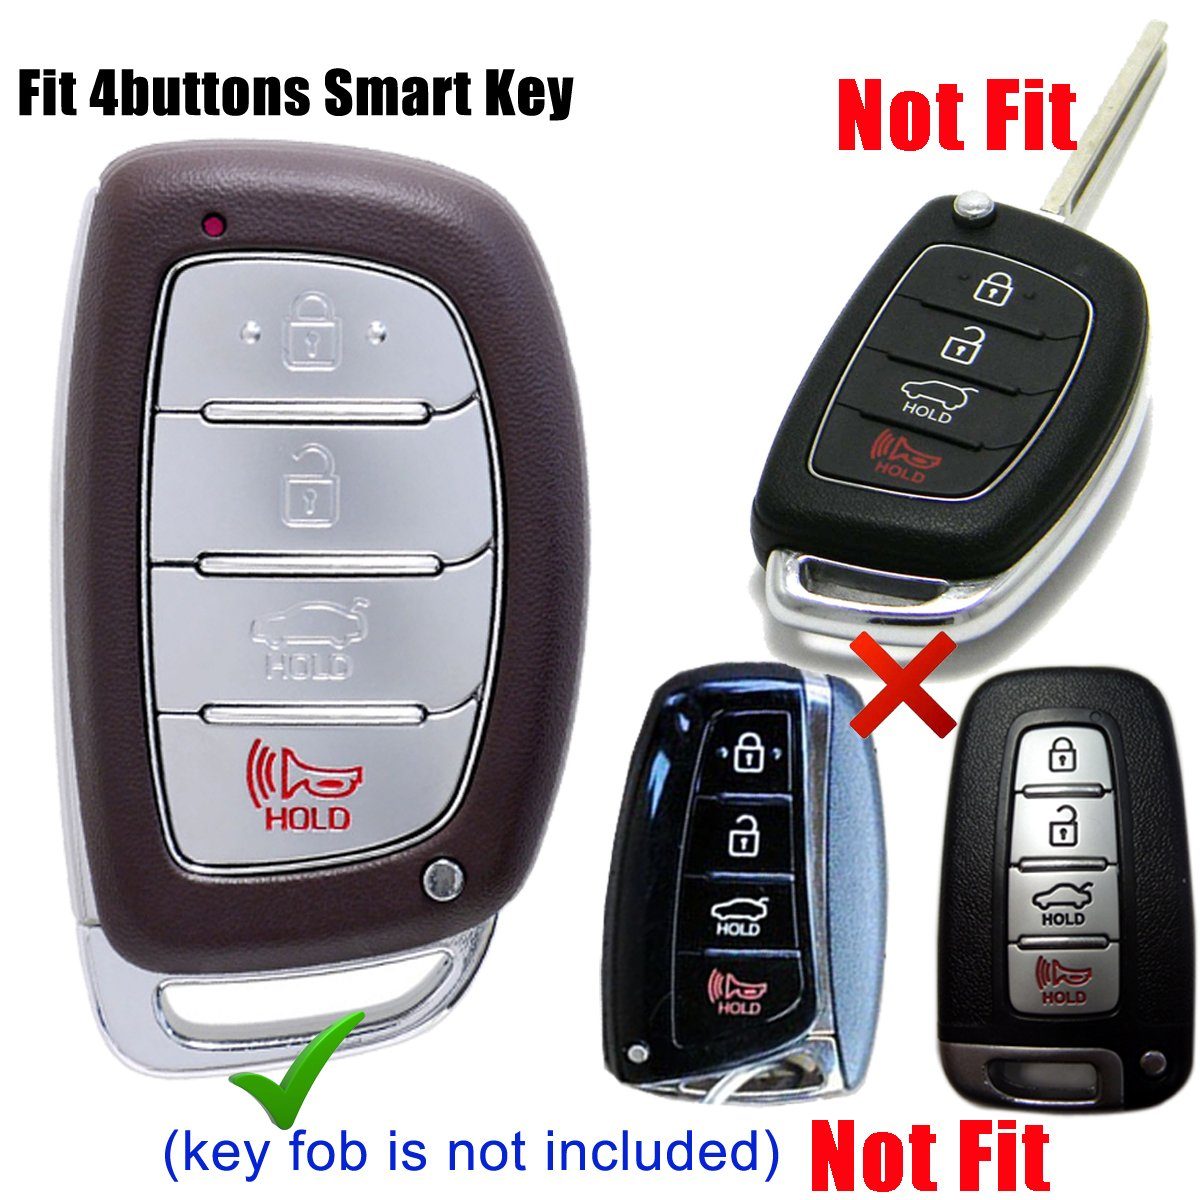 NOT FIT Flip//Pop Out//Folding key Brown Coolbestda Genuine Leather Key Fob Remote Cover Keyless Entry Jacket Holder for 2018 2017 2016 Hyundai Tucson Elantra Sonata 4Buttons